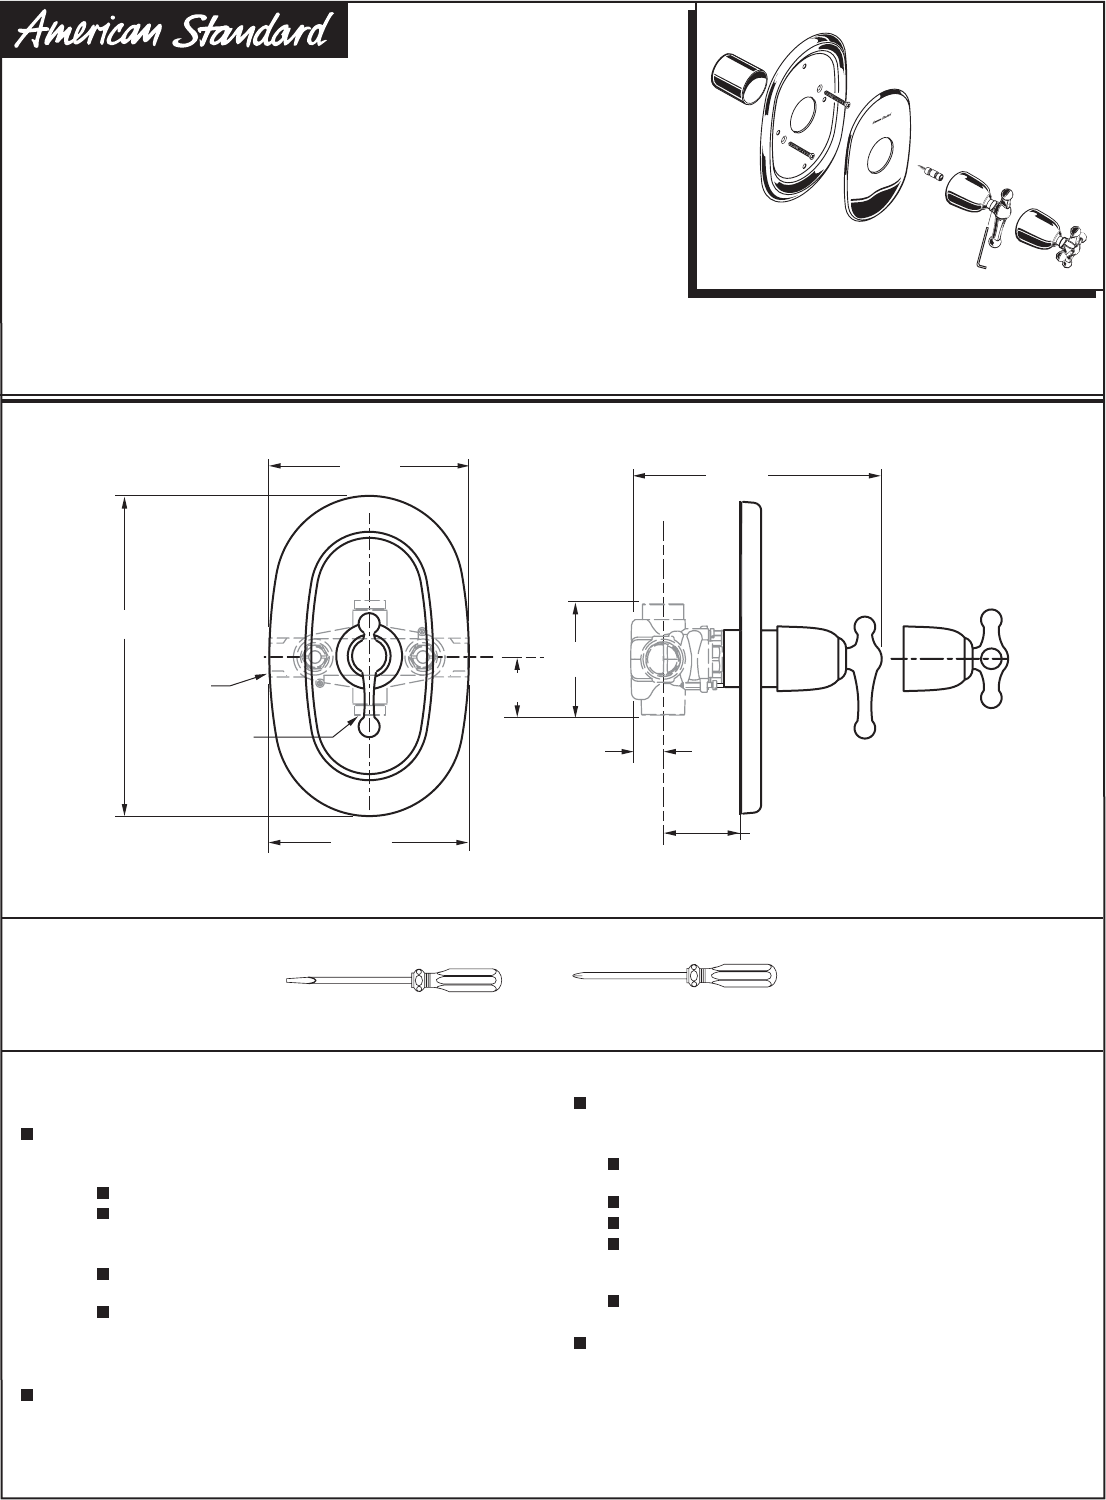 american standard 824 thermostat manual